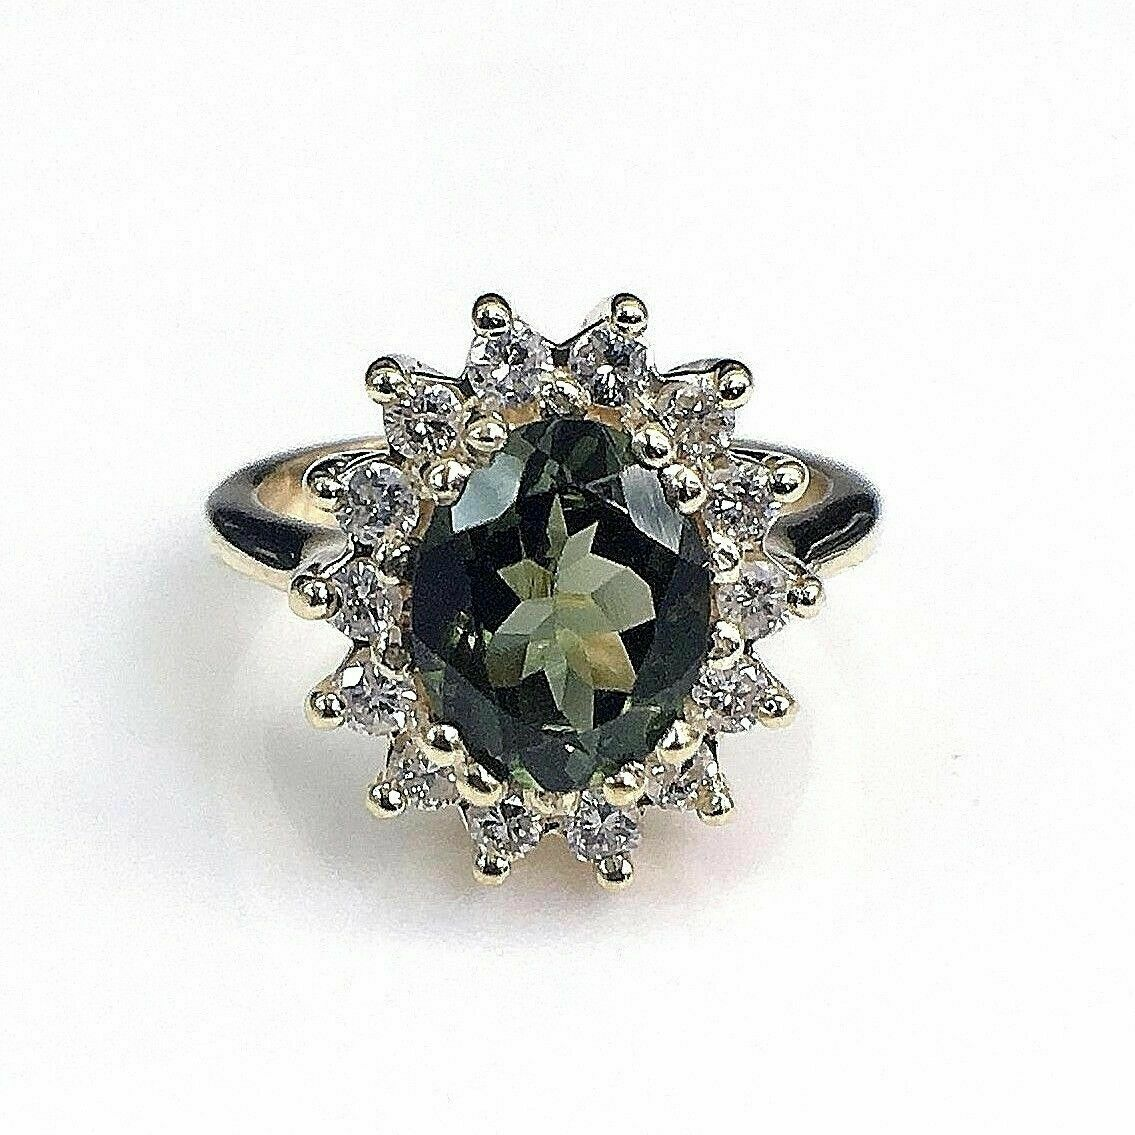 2.22 Carats t.w. Diamond and Tourmaline Cocktail Ring Tourmaline is 1.72 Carats